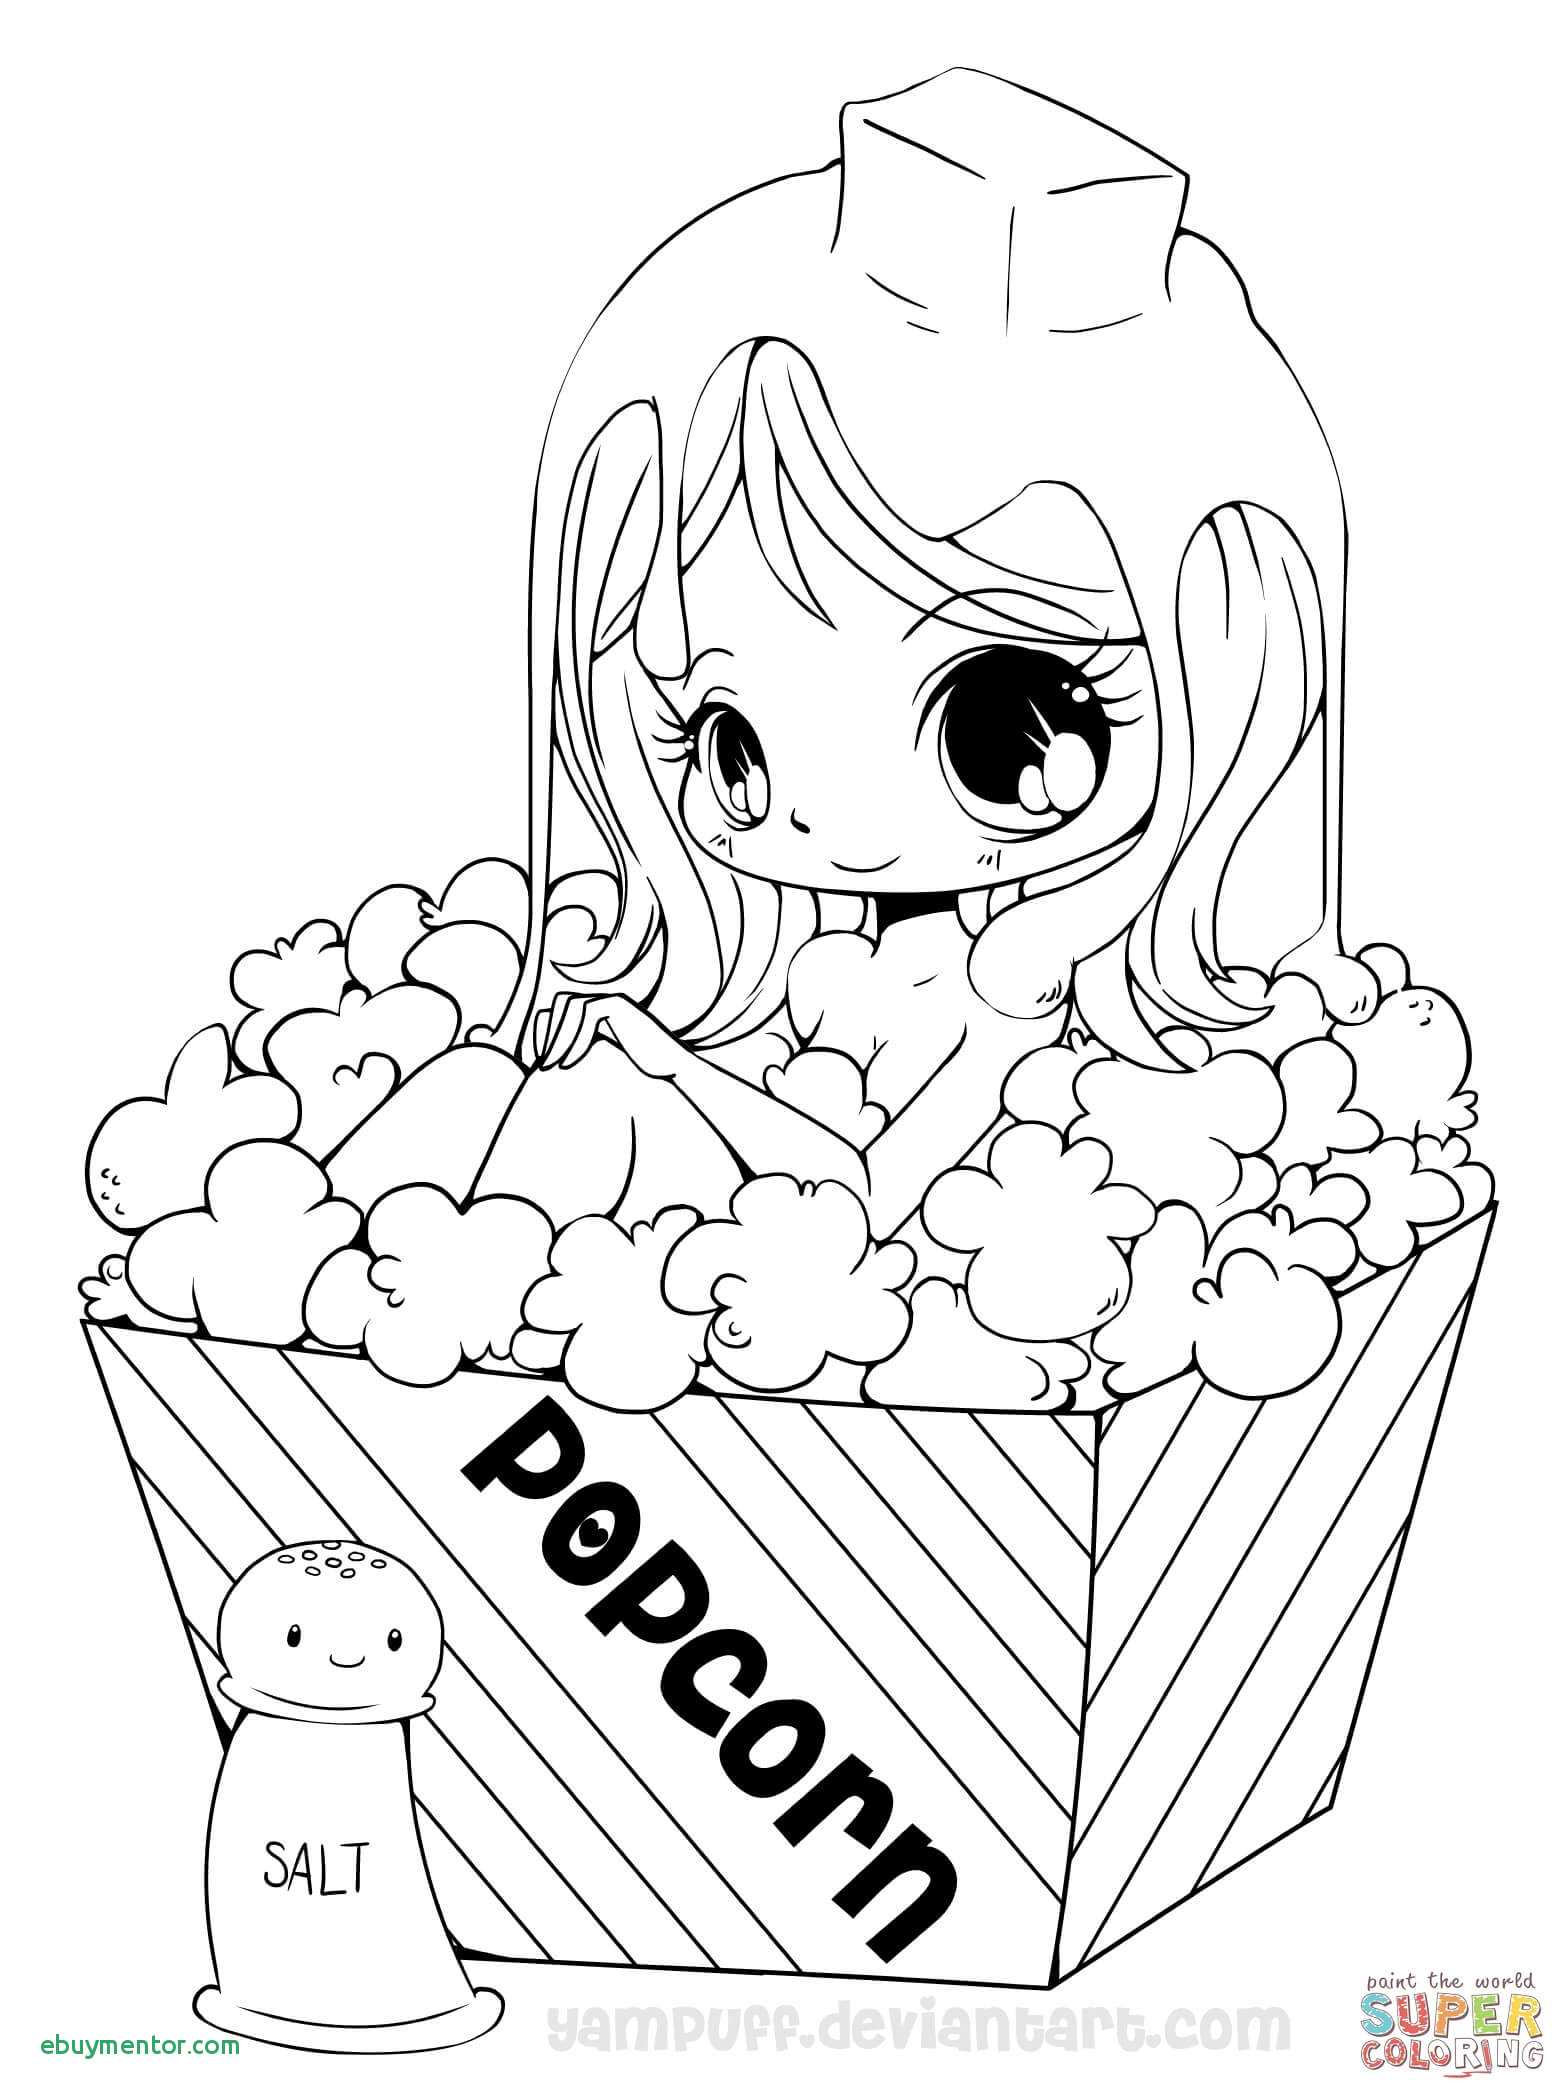 anime coloring pages Download-Anime Girl Coloring Pages Witch Coloring Page Inspirational Crayola Pages 0d Coloring Page 5-h